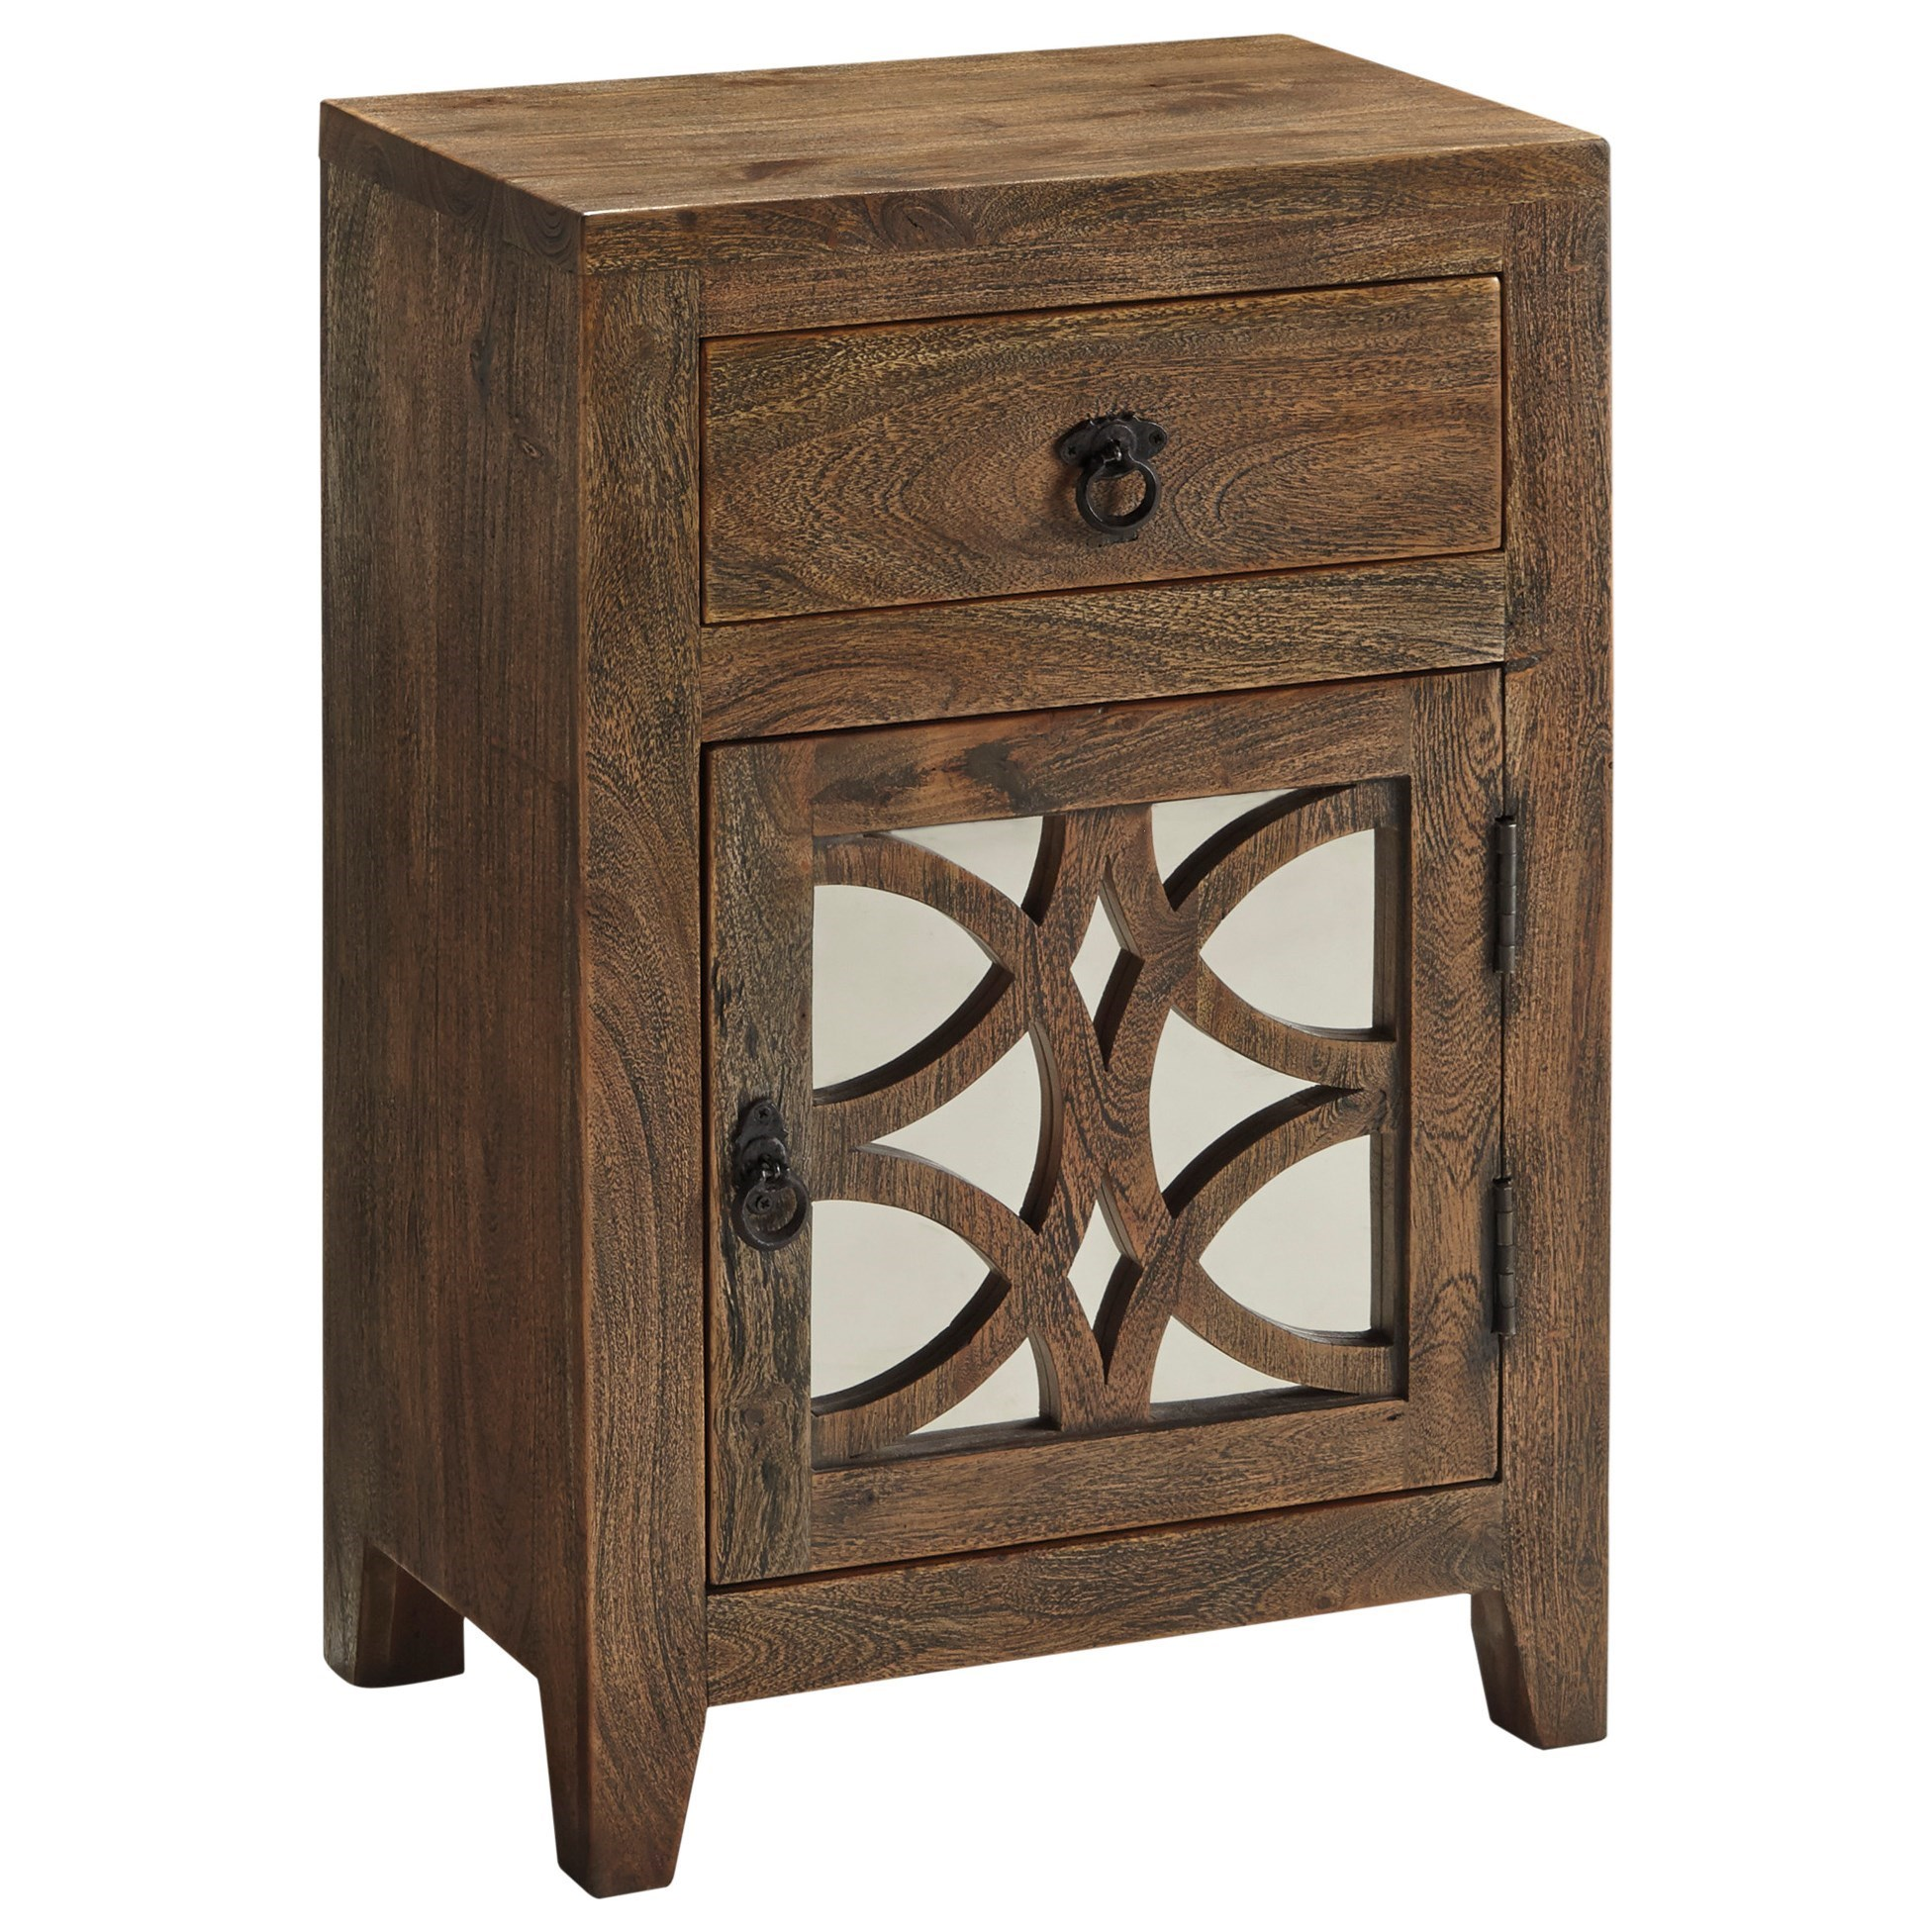 Signature Design by Ashley Charlowe Night Stand - Item Number: B013-692